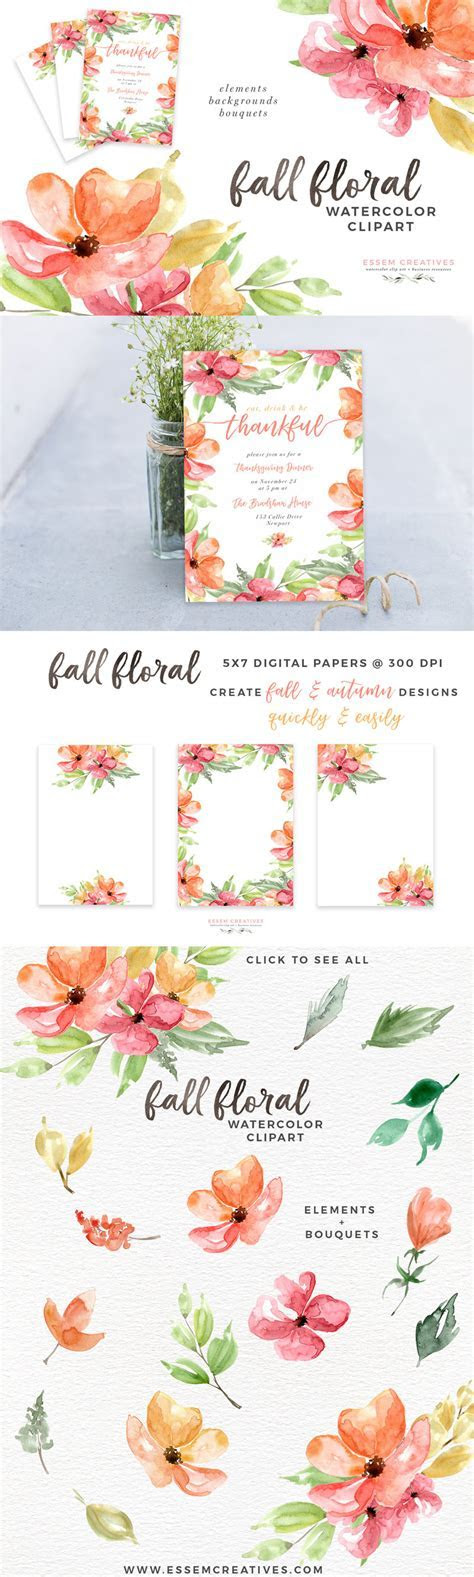 Autumn Fall Watercolor Floral Clipart, 5x7 Digital Papers